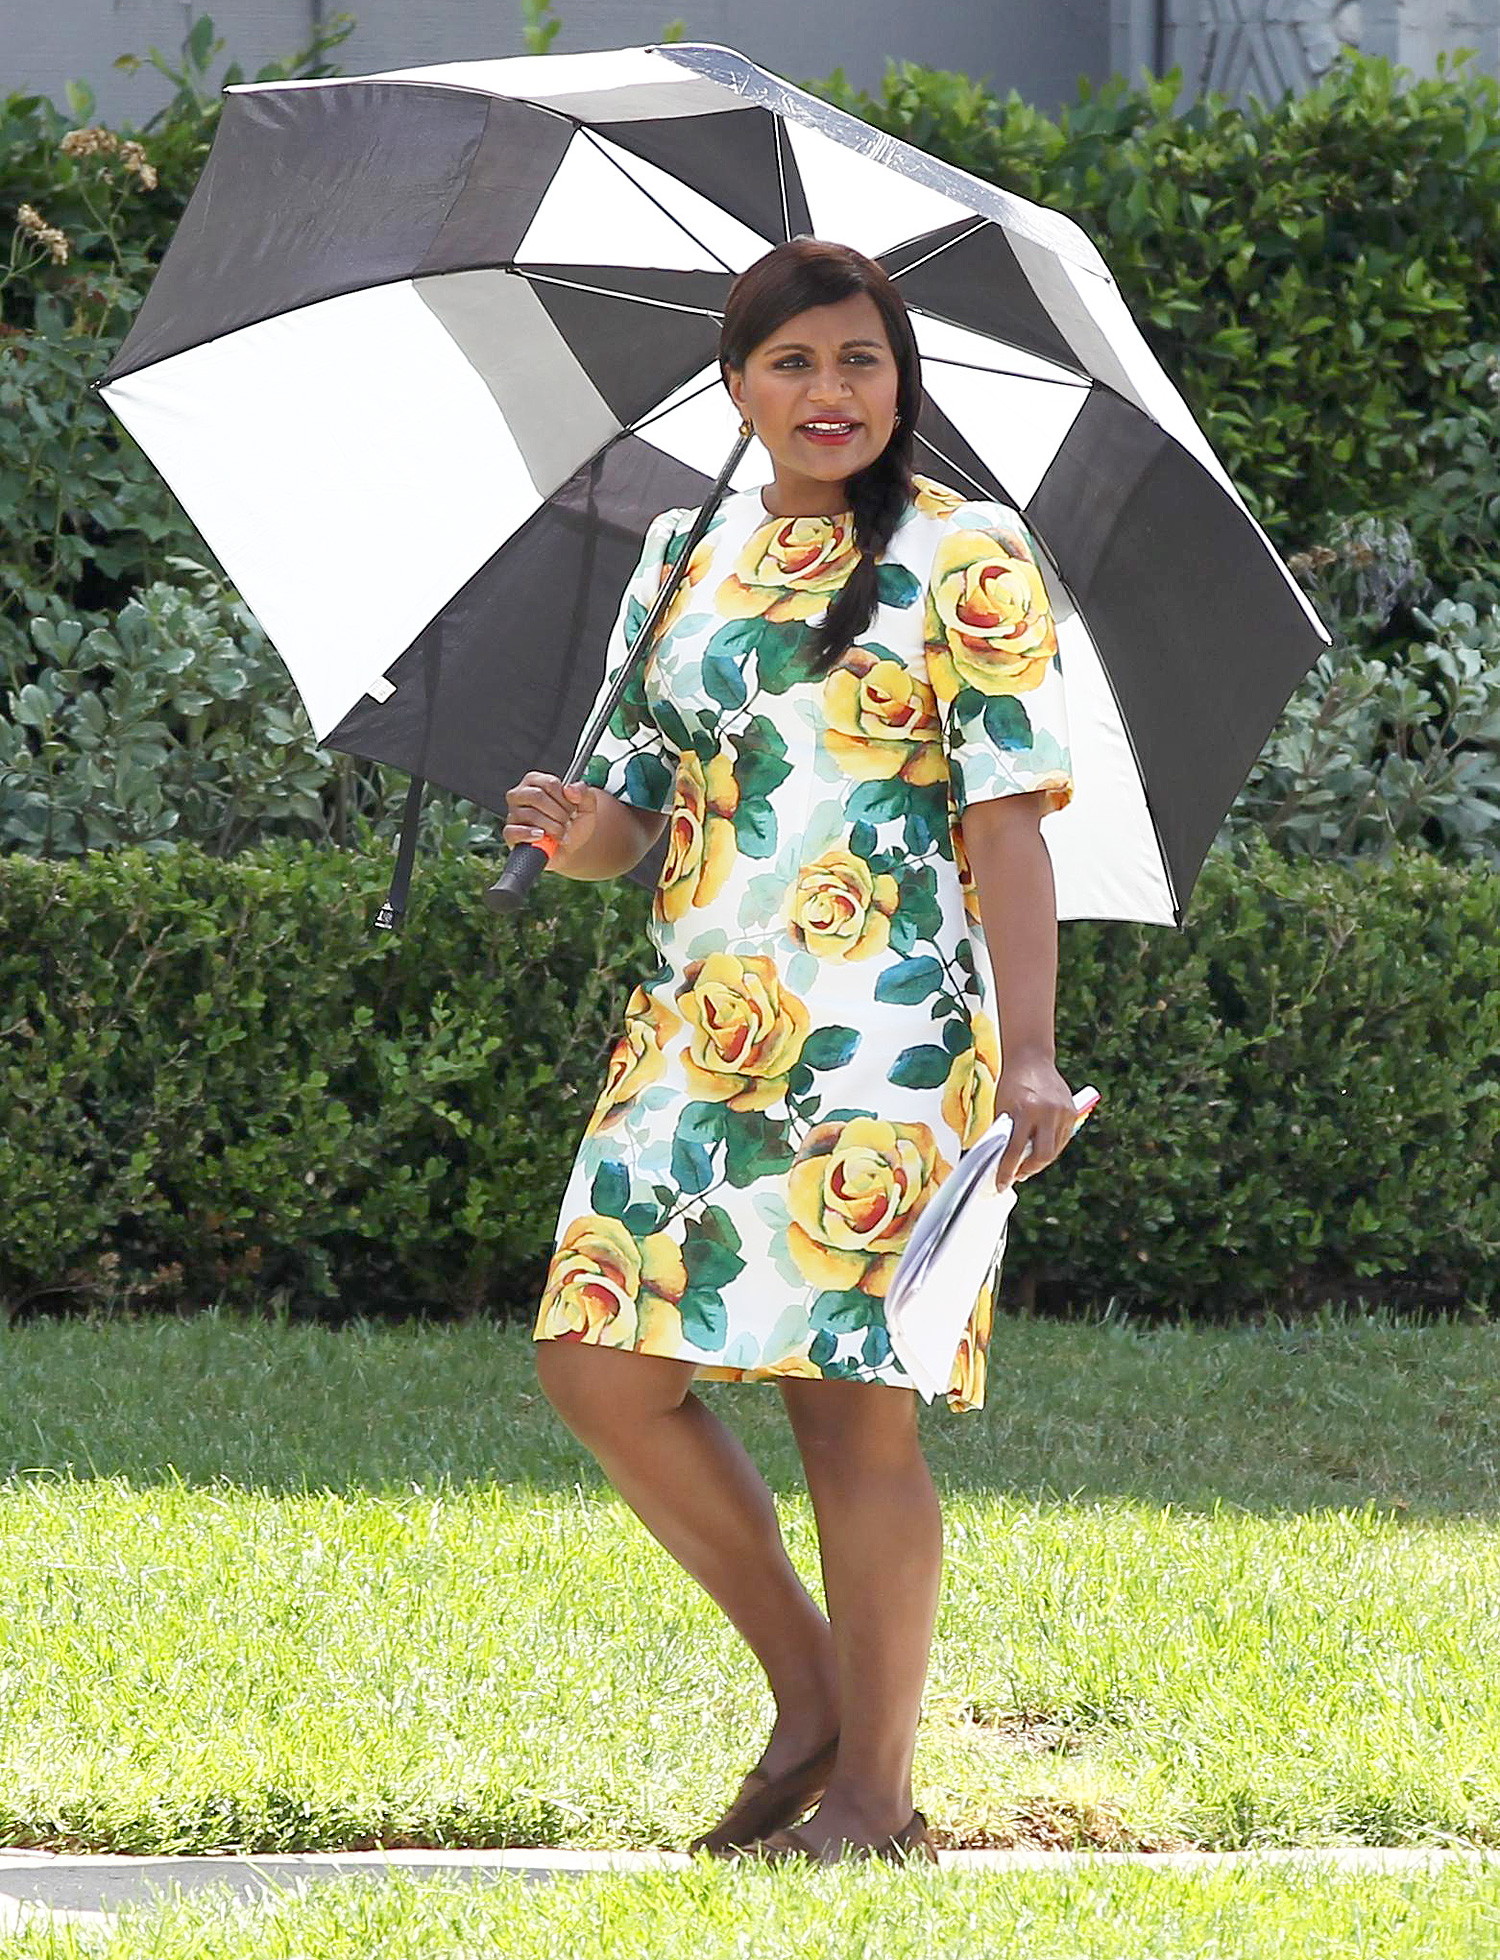 Mindy Kaling wears a yellow floral dress on the set of The Mindy Project in Los Angeles